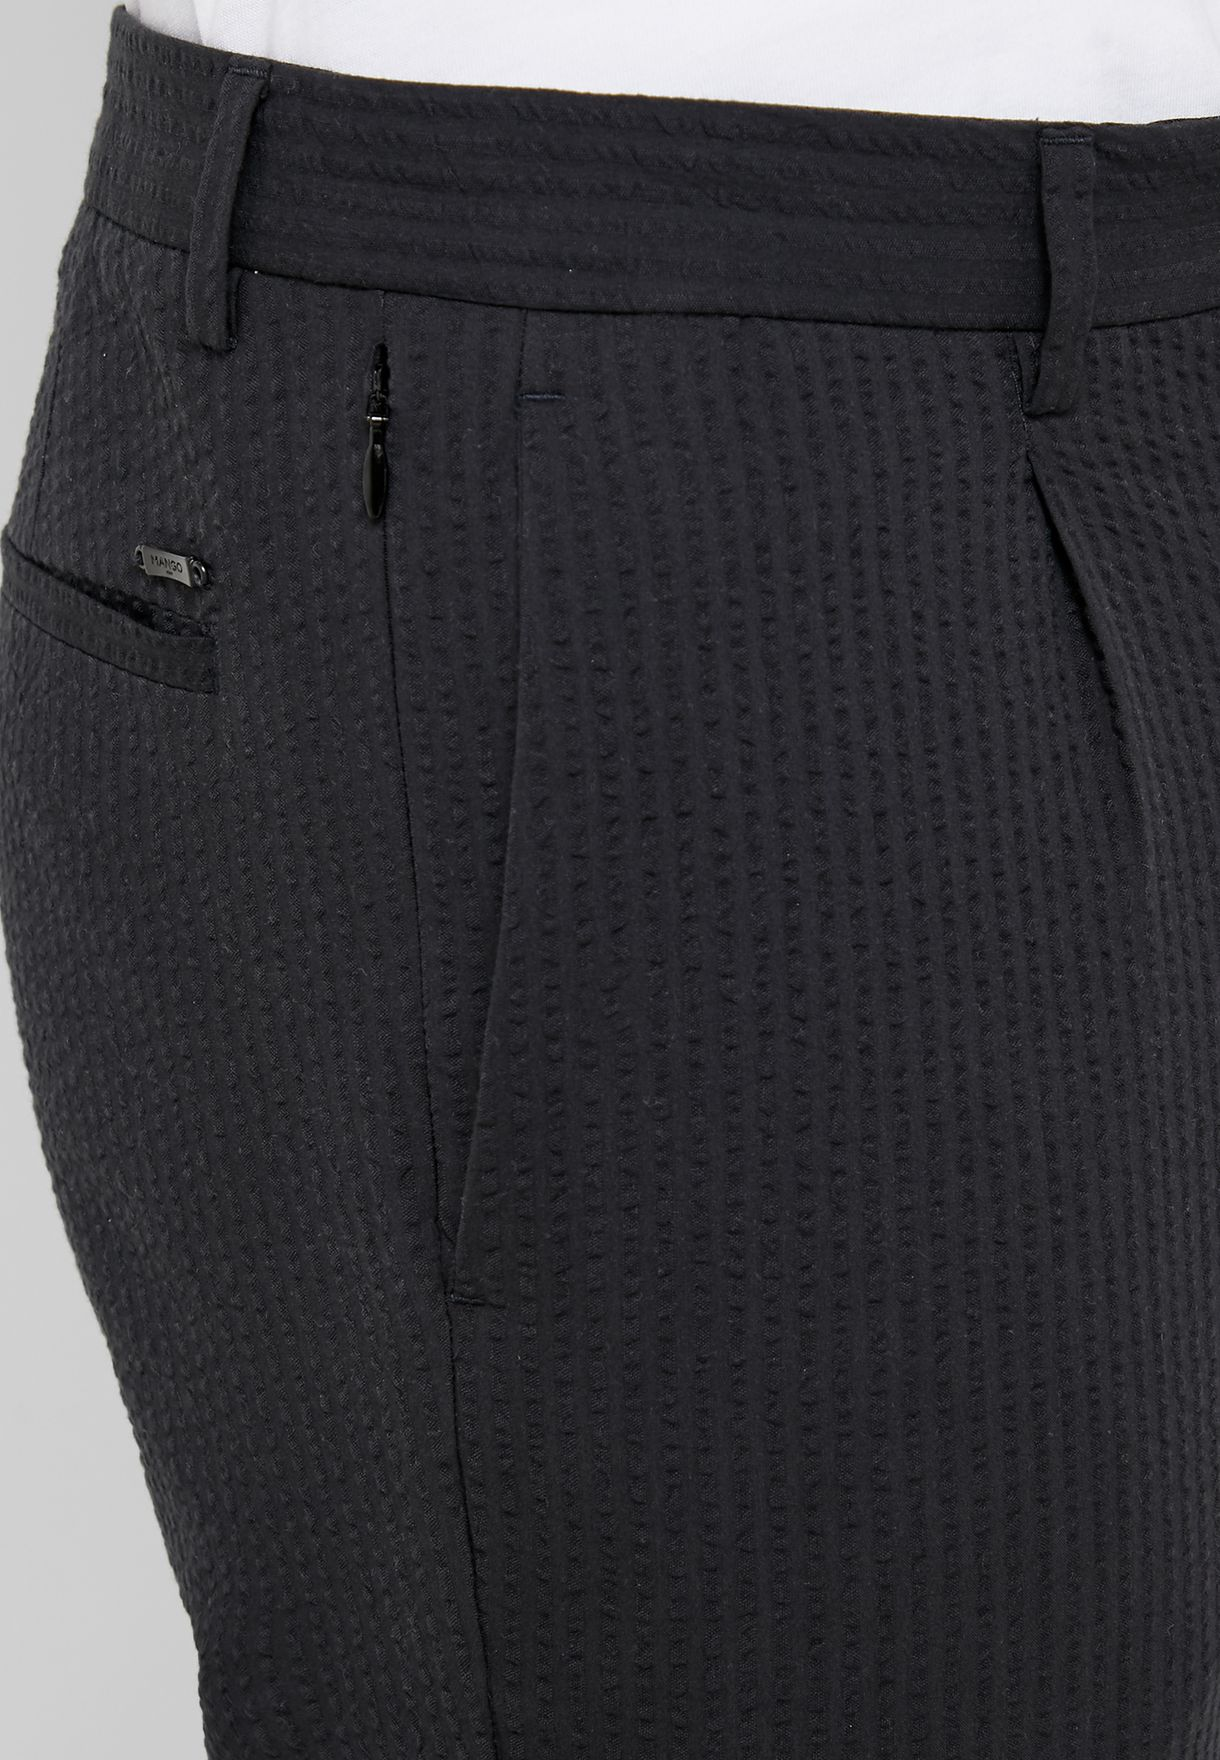 Seersucker Textured Trousers